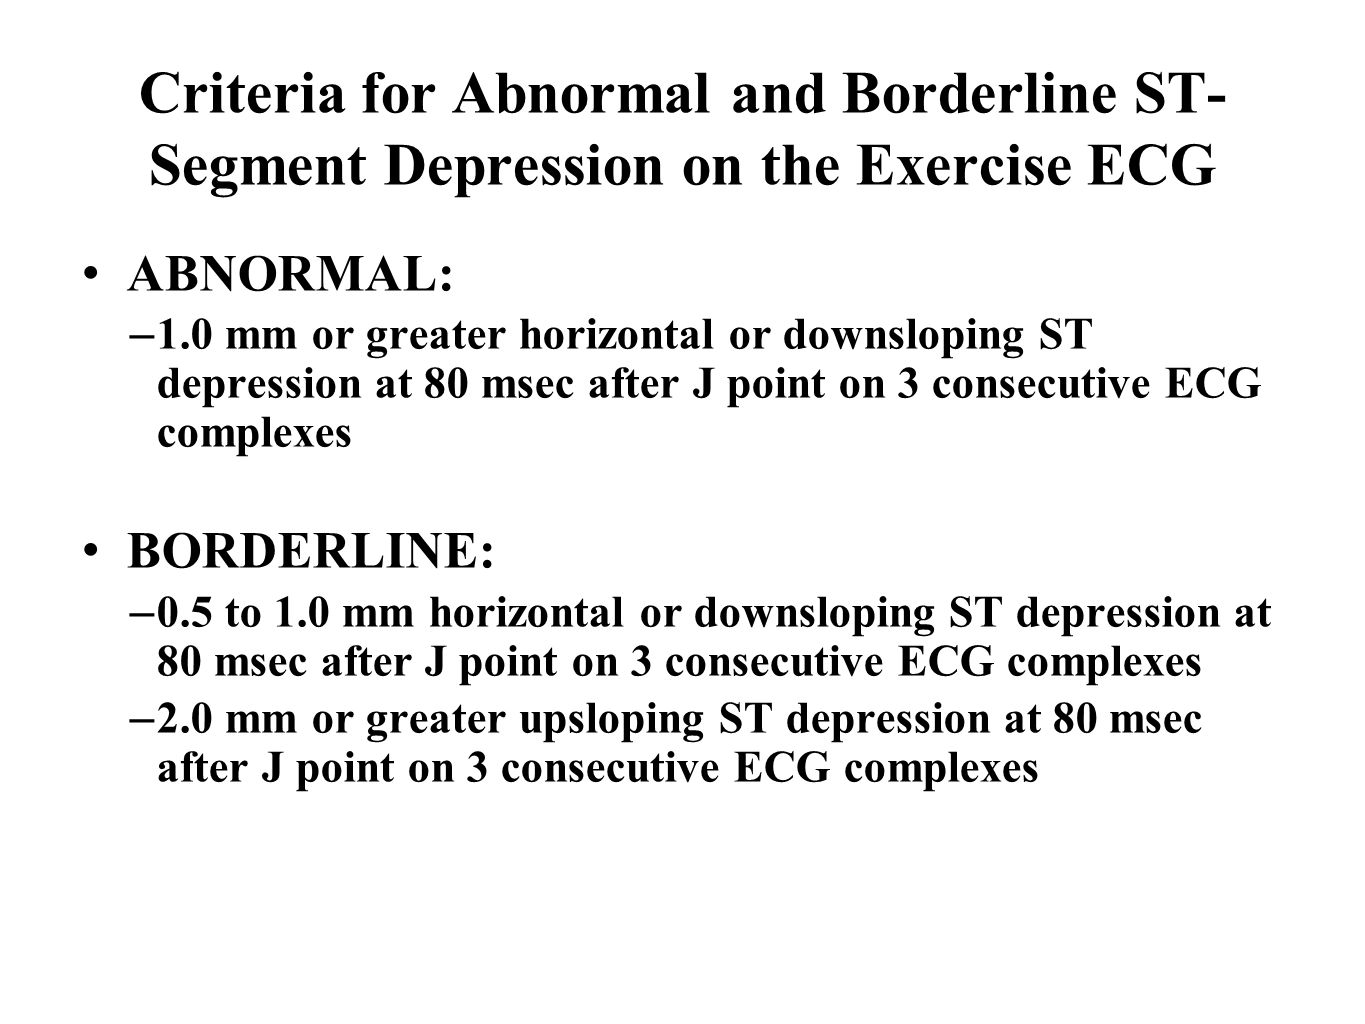 Criteria for Abnormal and Borderline ST-Segment Depression on the Exercise ECG